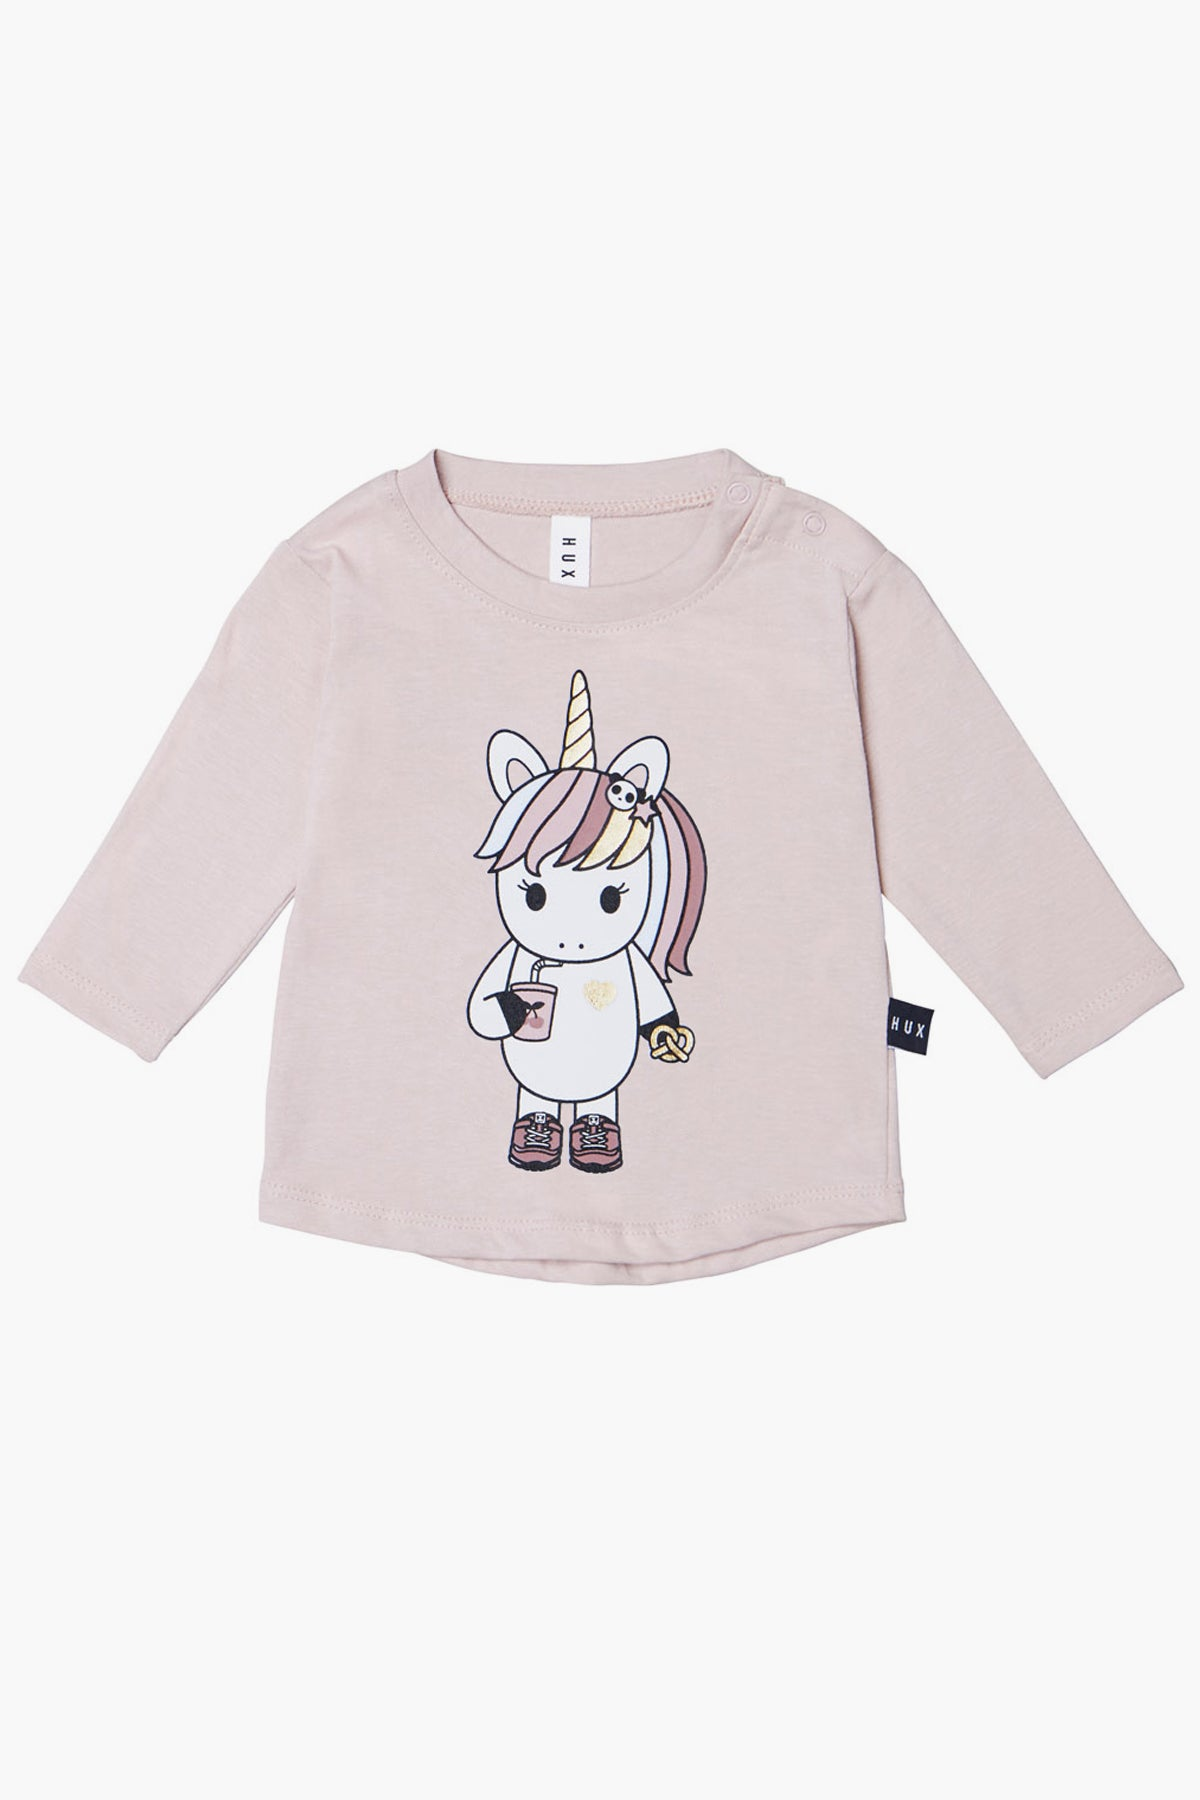 Huxbaby Unicorn Girls Tee